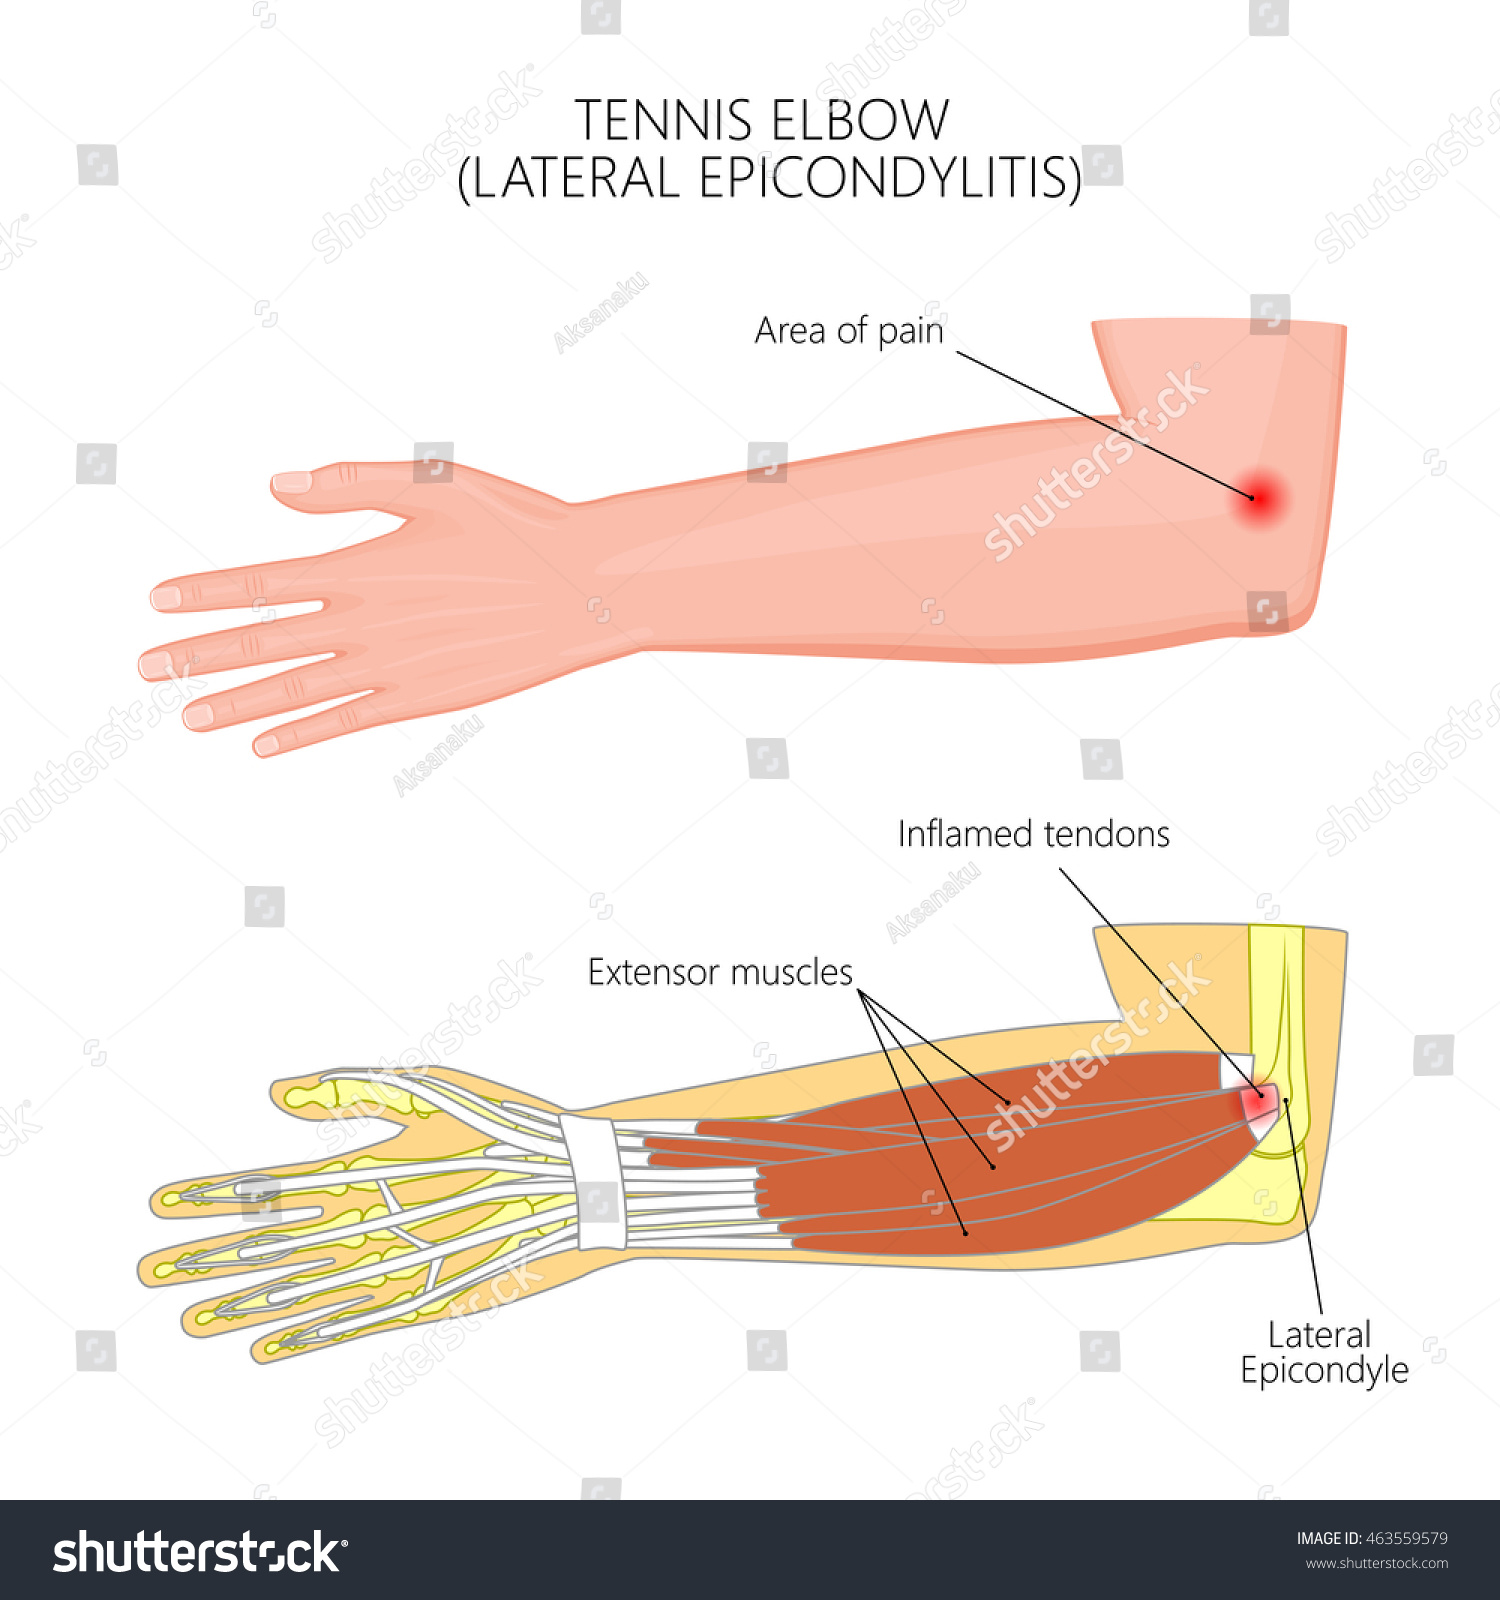 Vector Illustration Lateral Epicondylitis Tennis Elbow Stock Vector ...